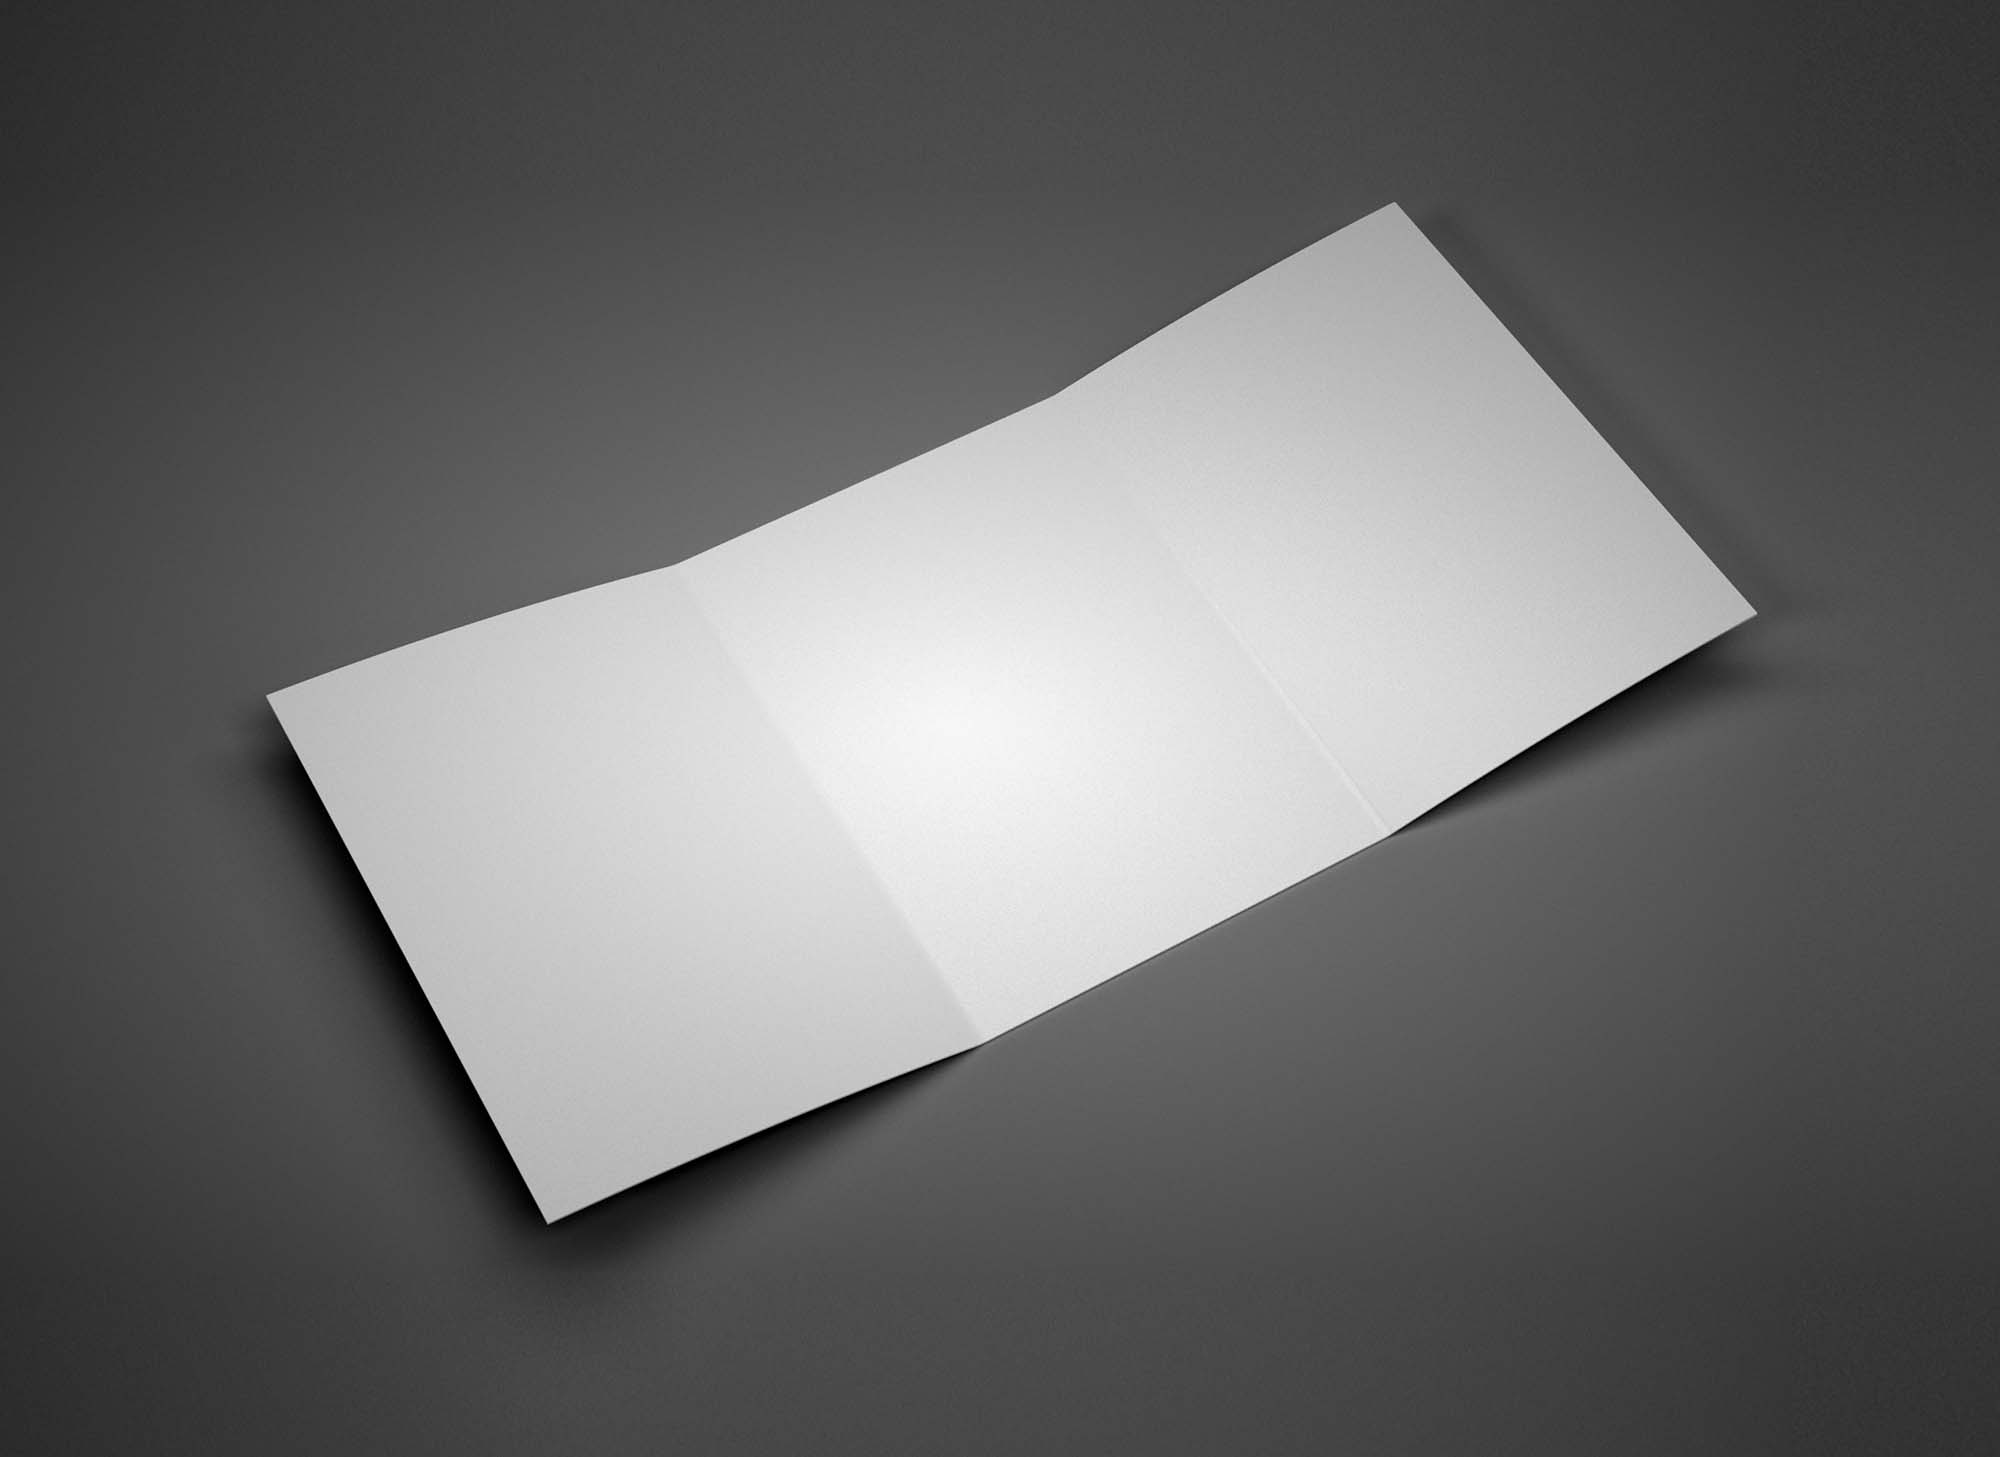 A4 Perspective Trifold Brochure Mockup 2